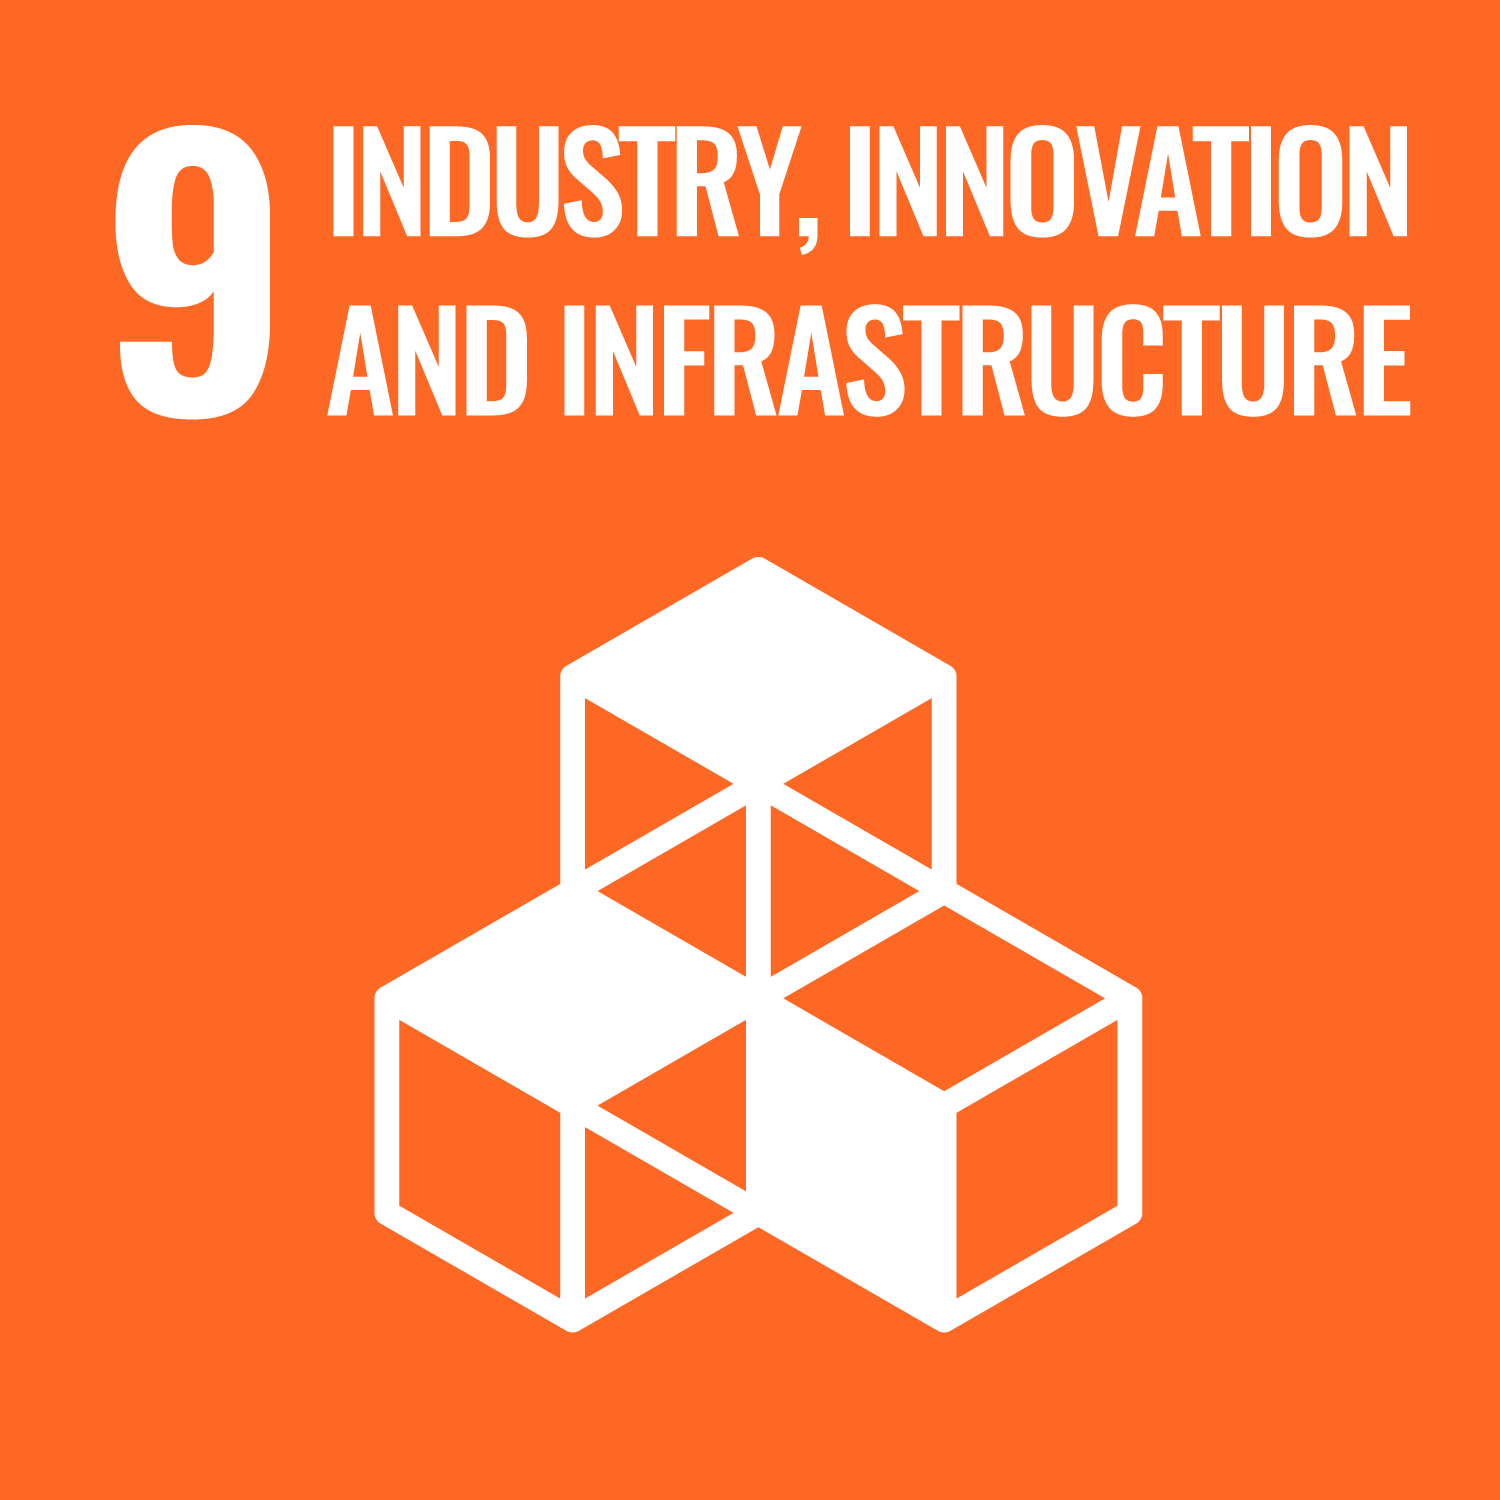 INDUSTRY,INNOVATION AND INFRASTRUCTURE